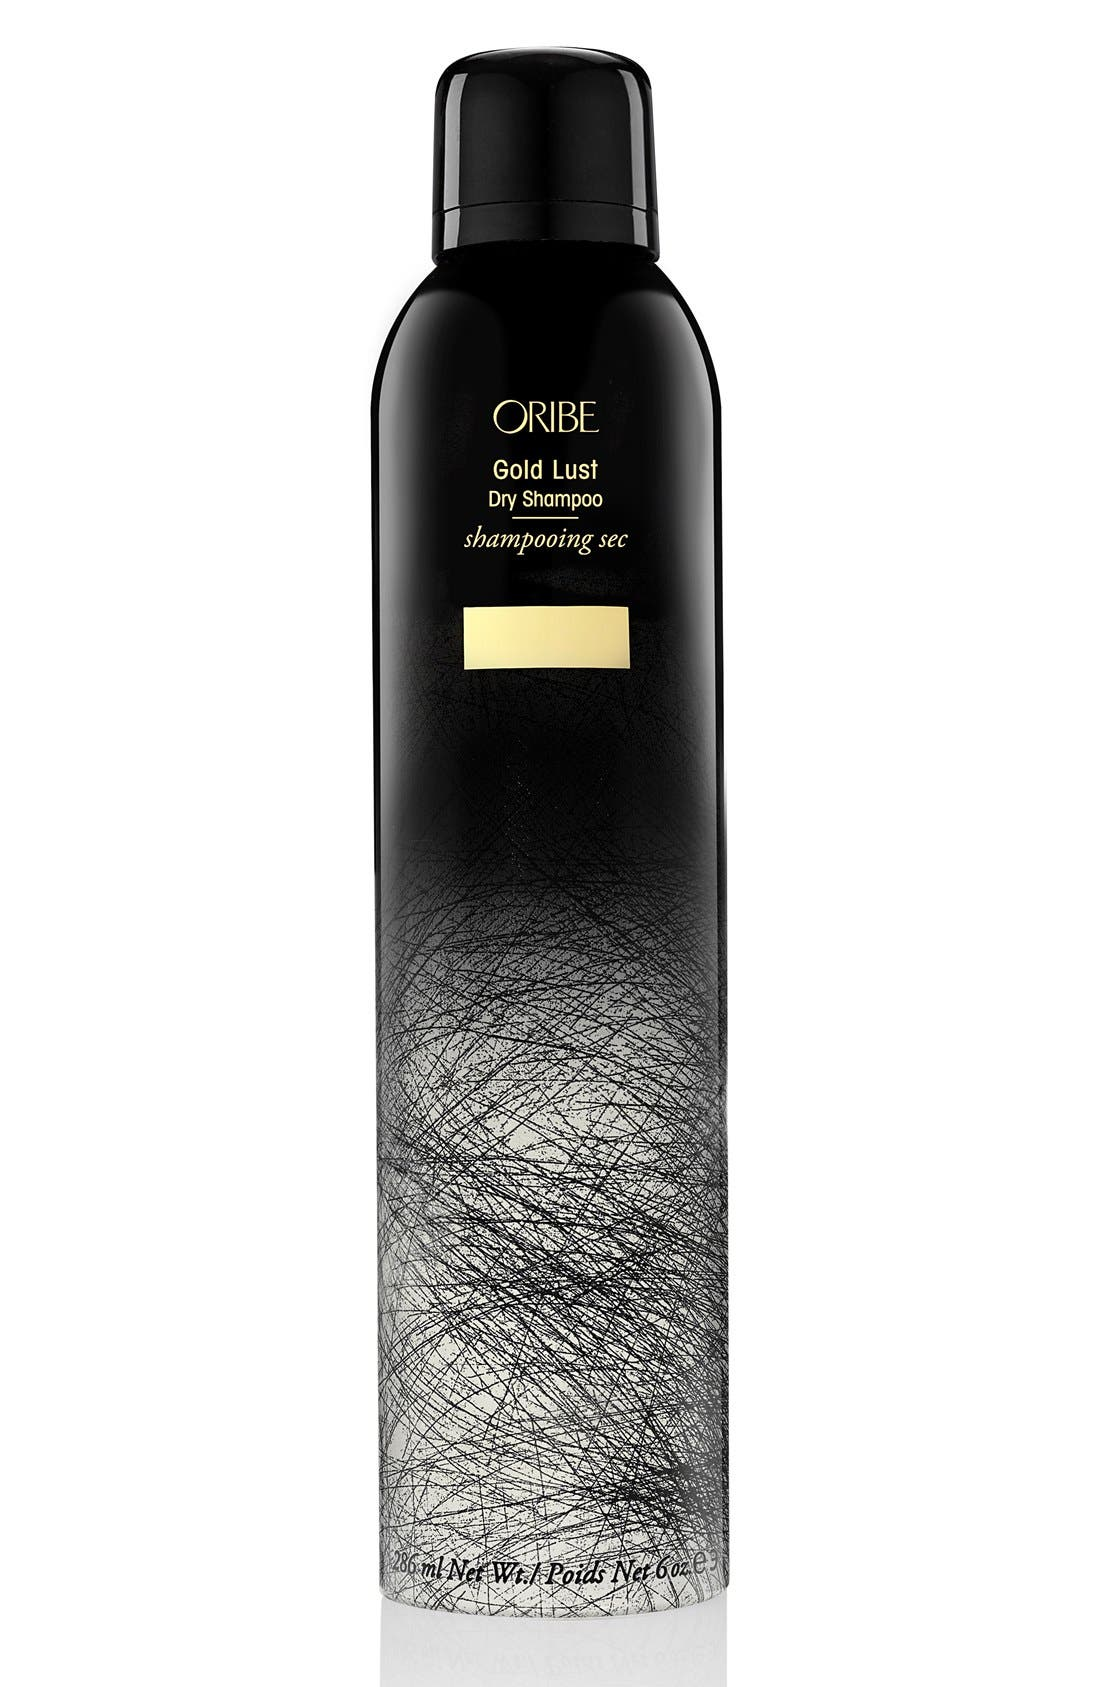 SPACE.NK.apothecary Oribe Gold Lust Dry Shampoo